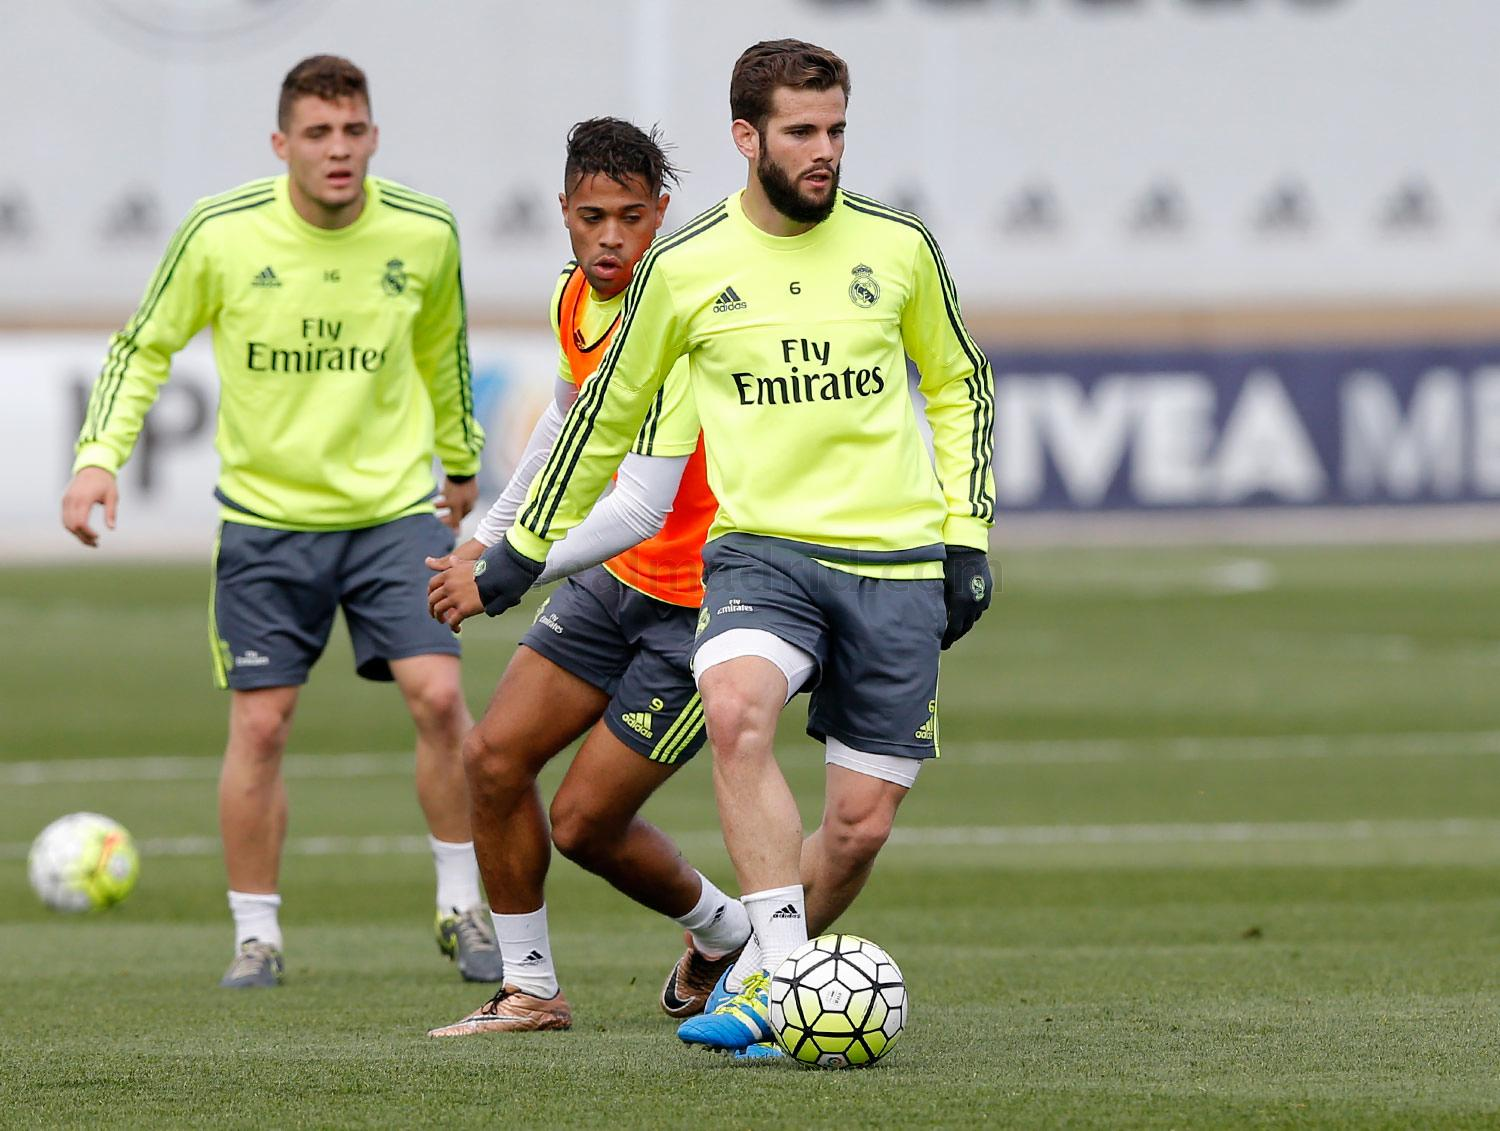 Real Madrid - Entrenamiento del Real Madrid - 29-03-2016